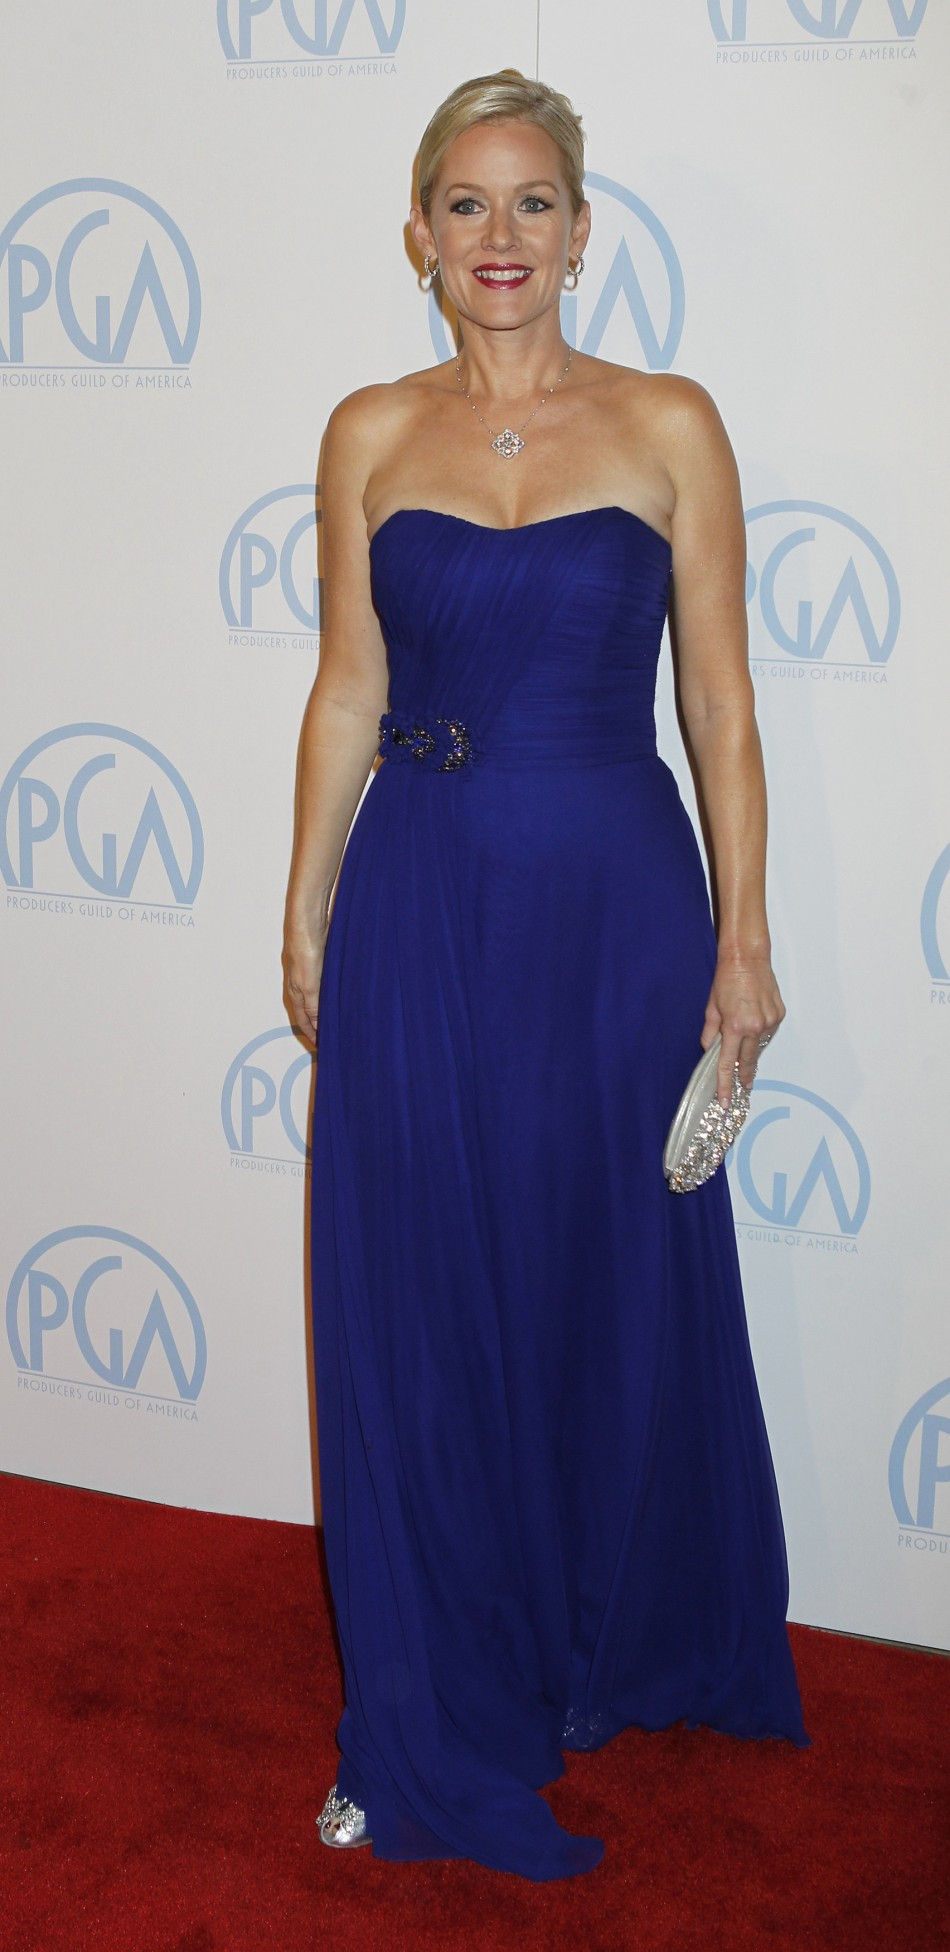 Producers Guild Awards 2012